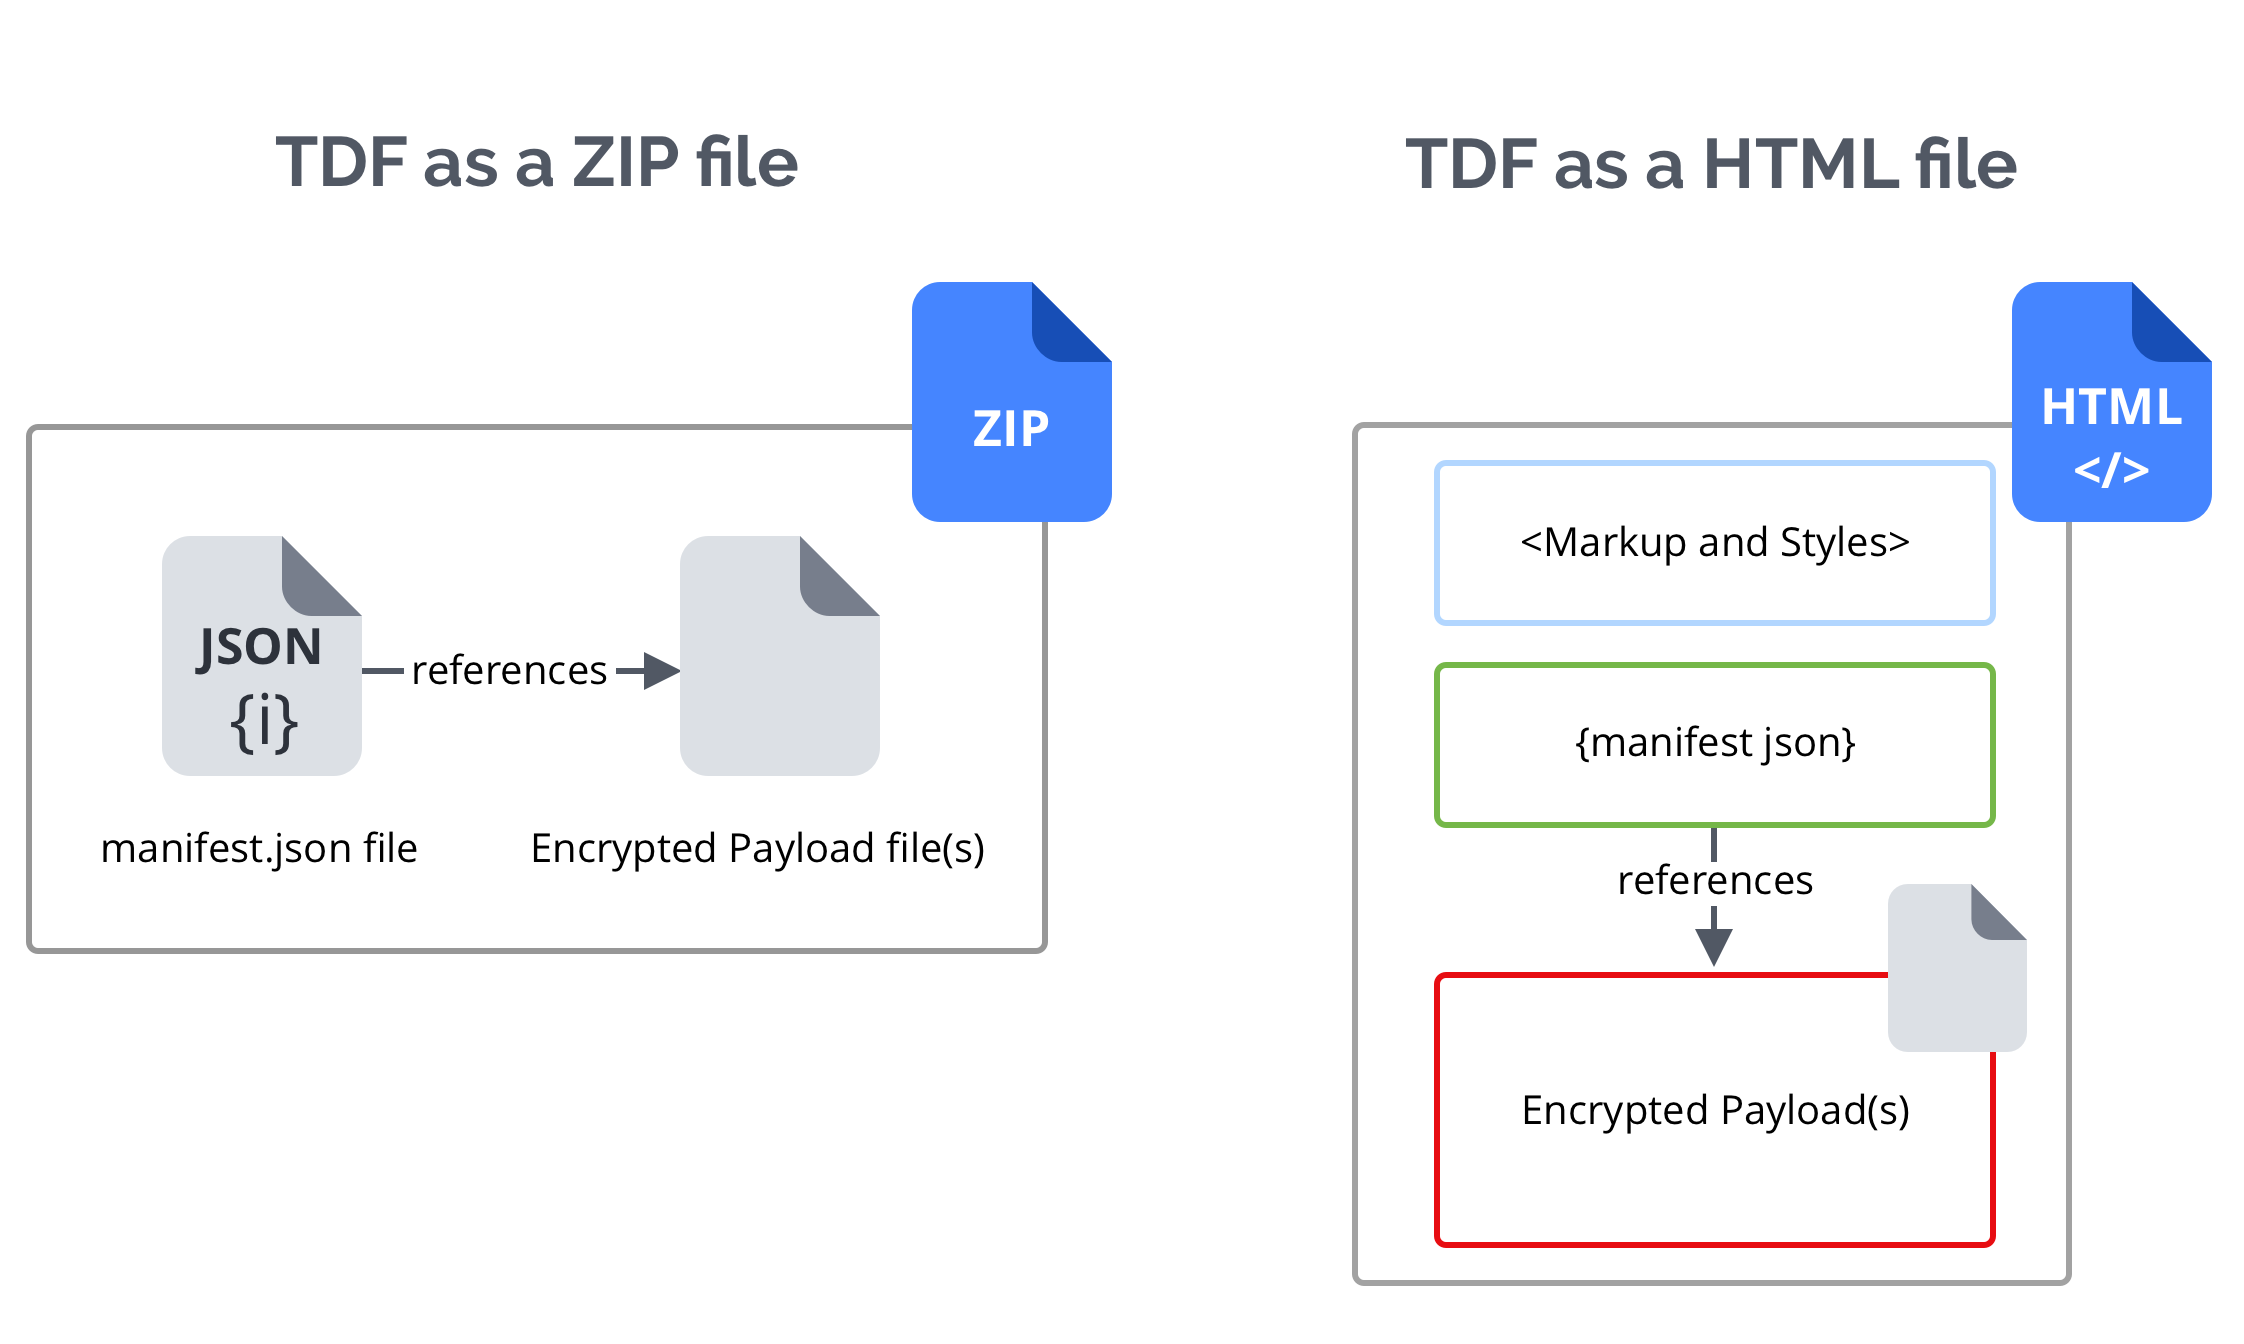 TDFs either take the form of a zip file or an HTML file